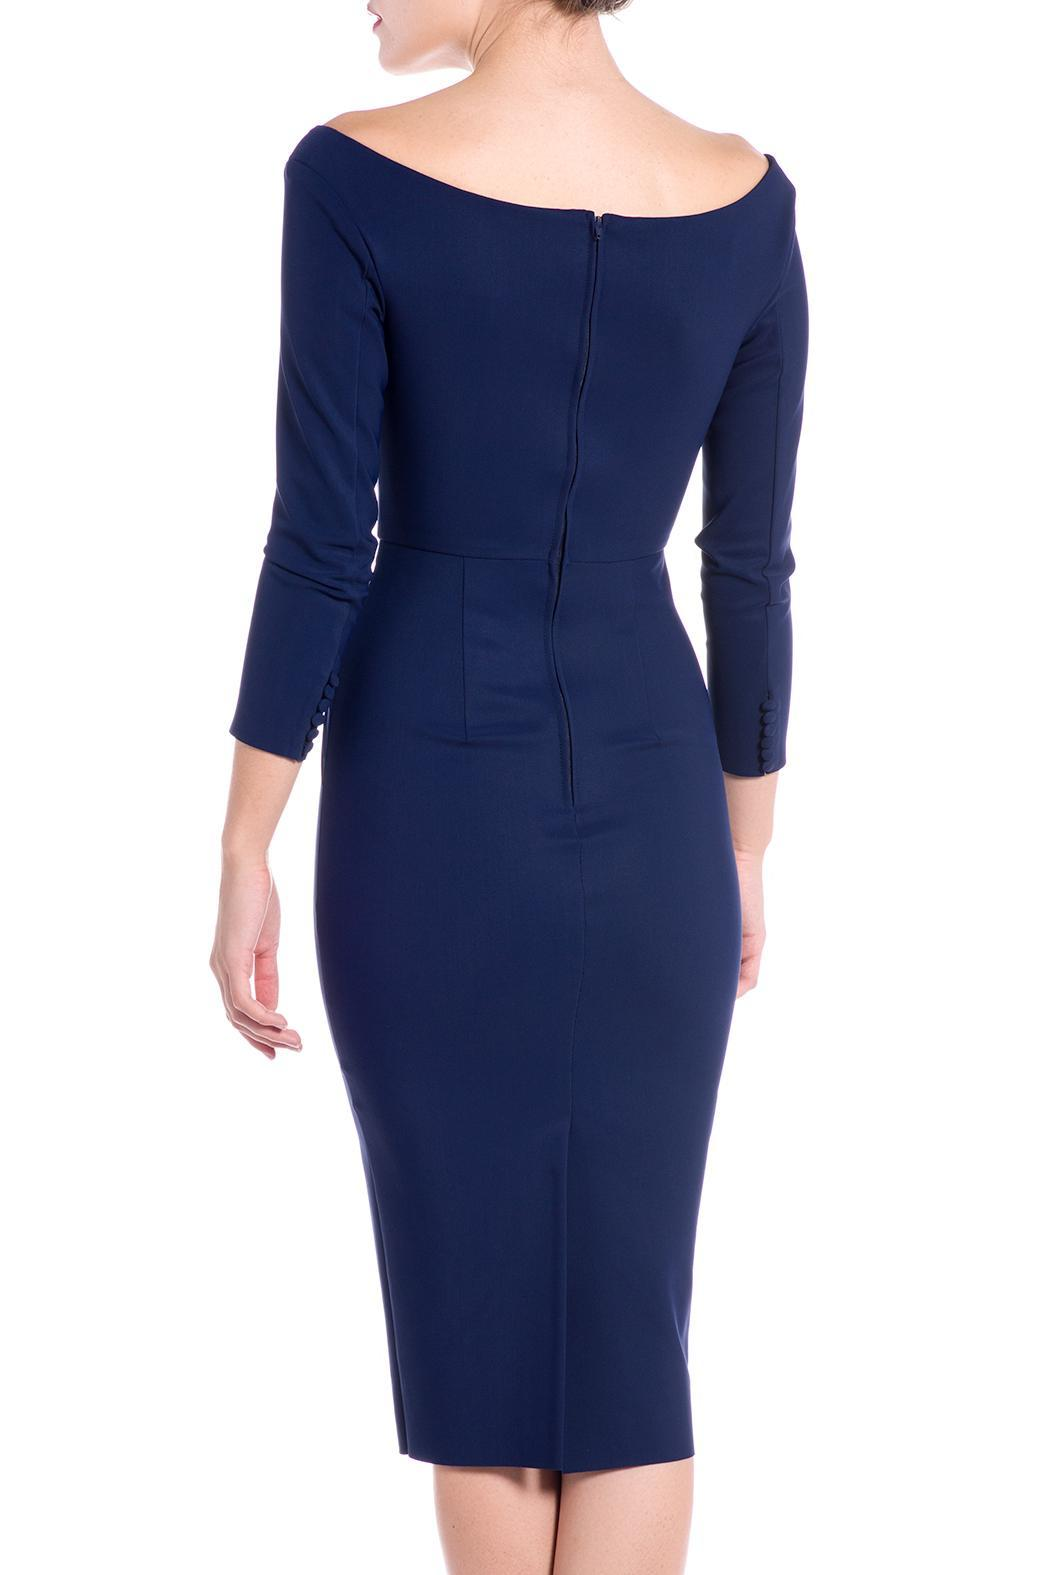 Greta Constantine Tempesta Cocktail Dress - Side Cropped Image